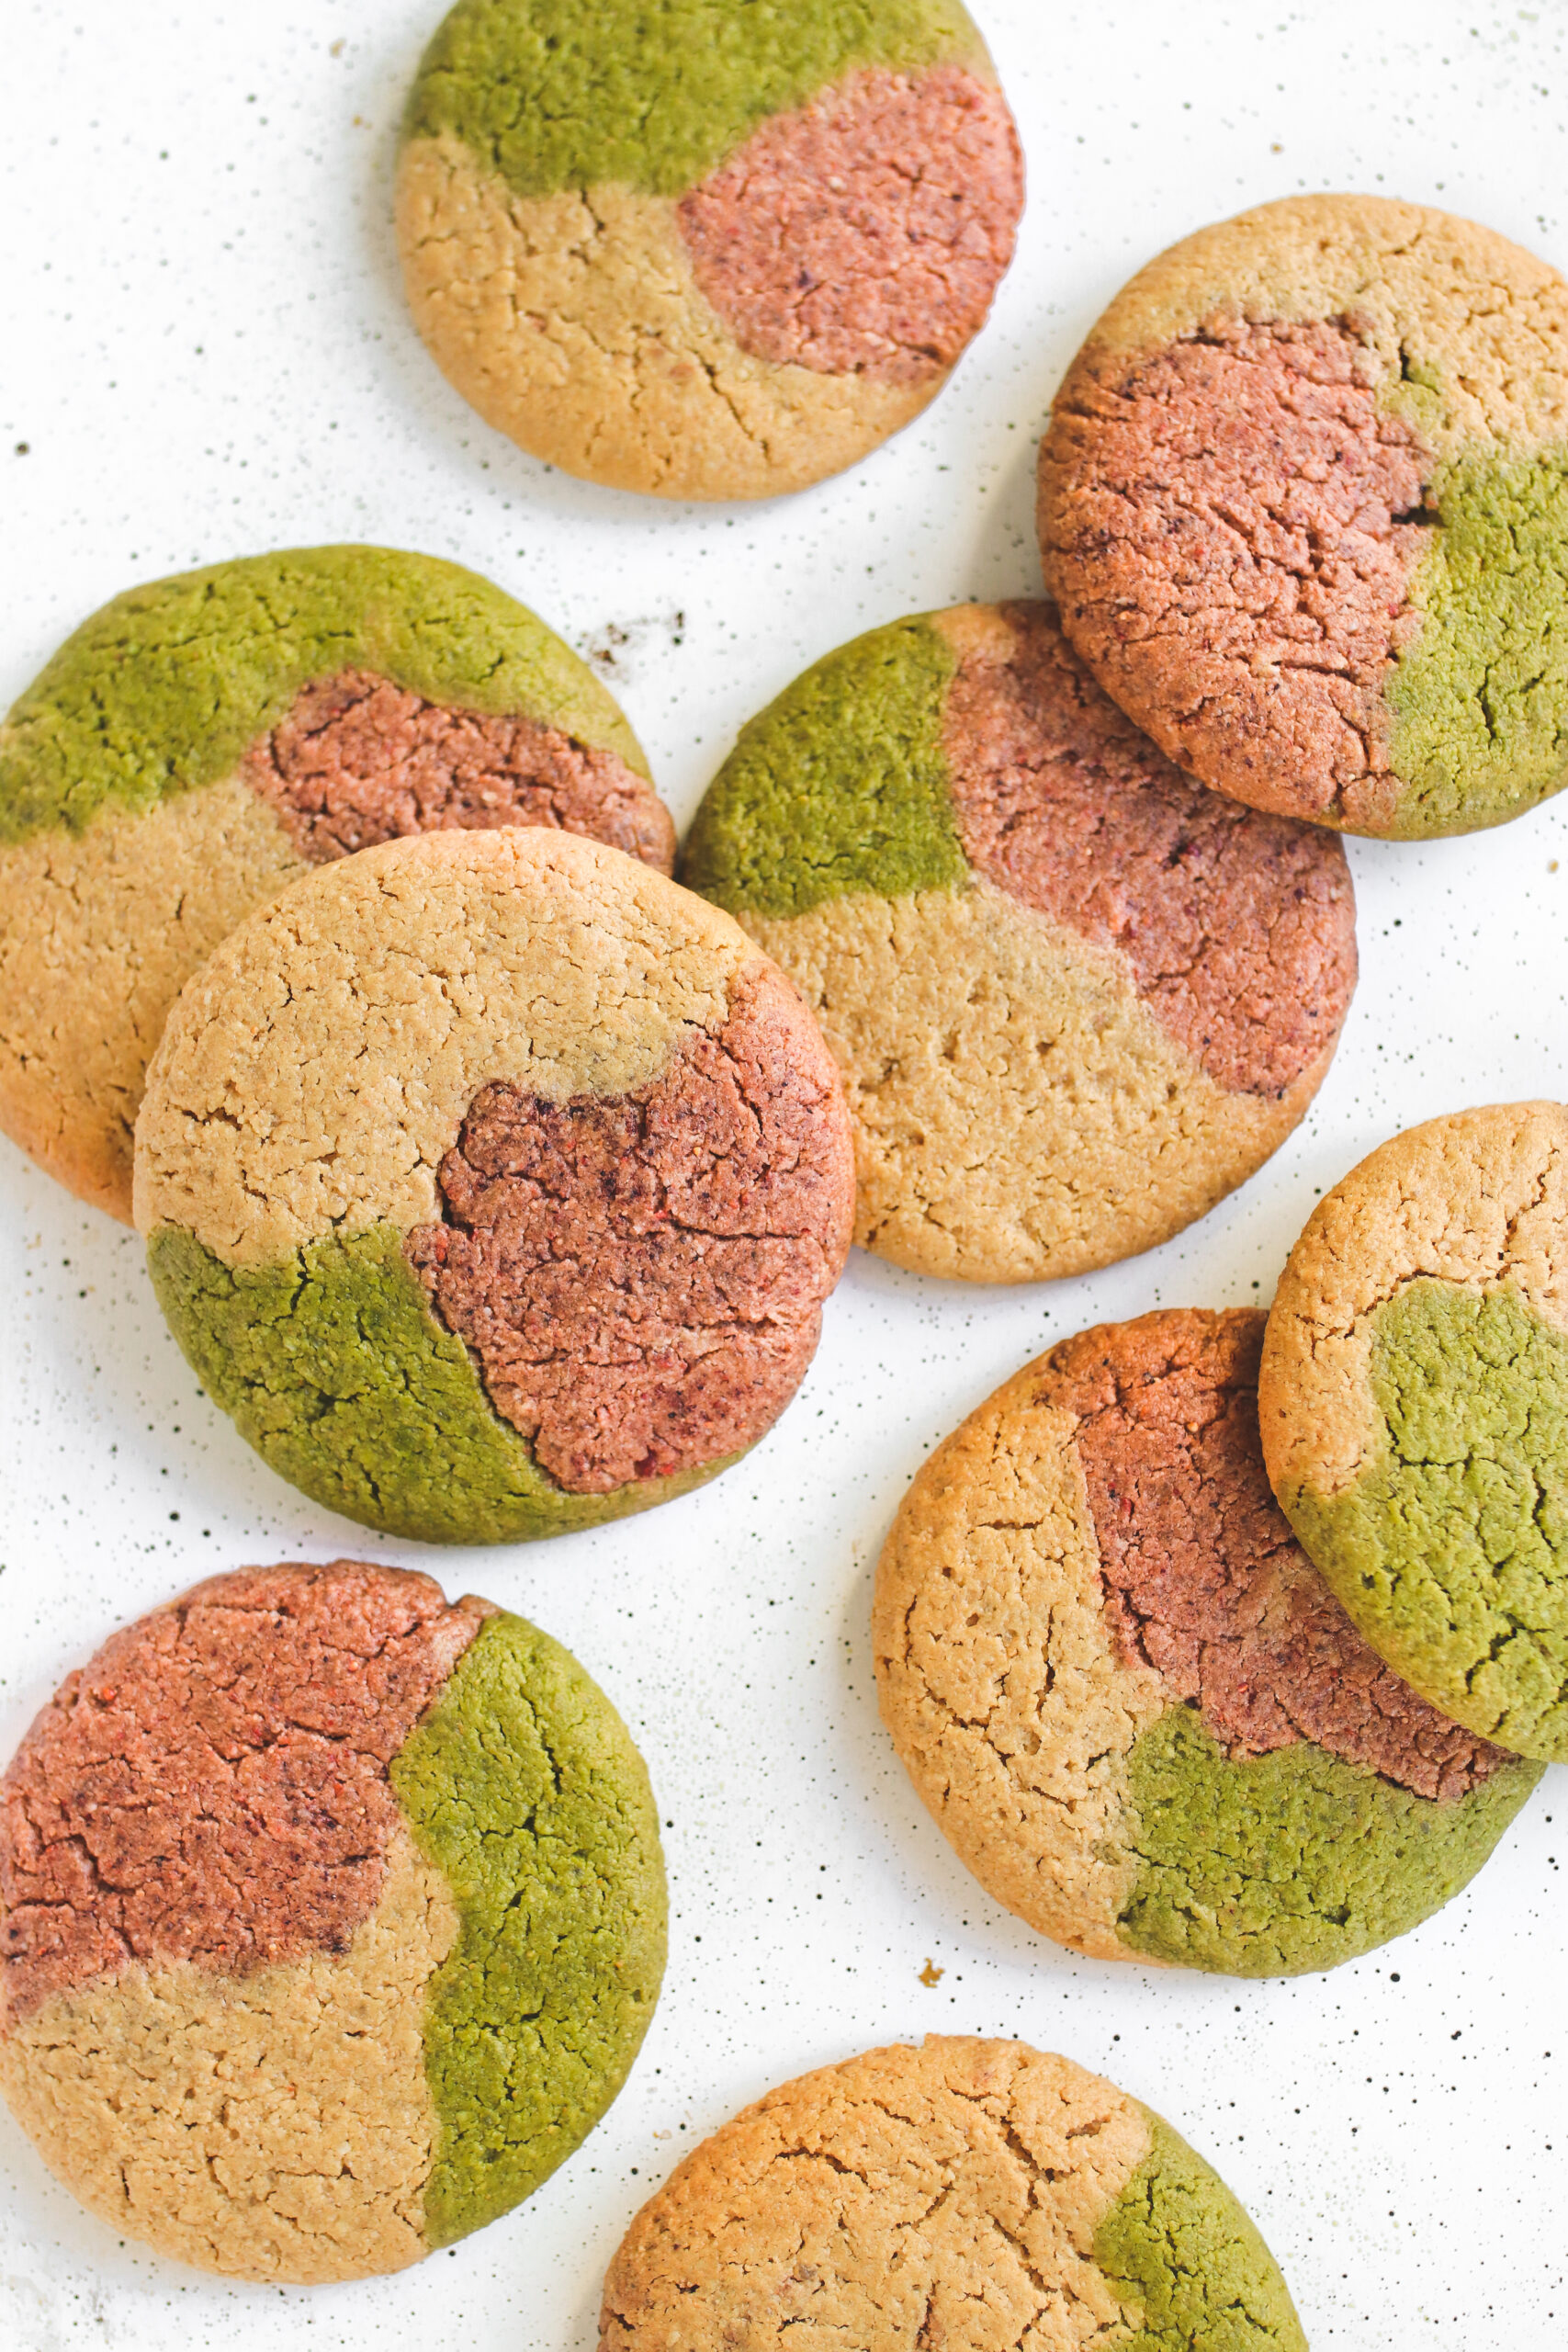 Strawberry Matcha Cookie Vegan